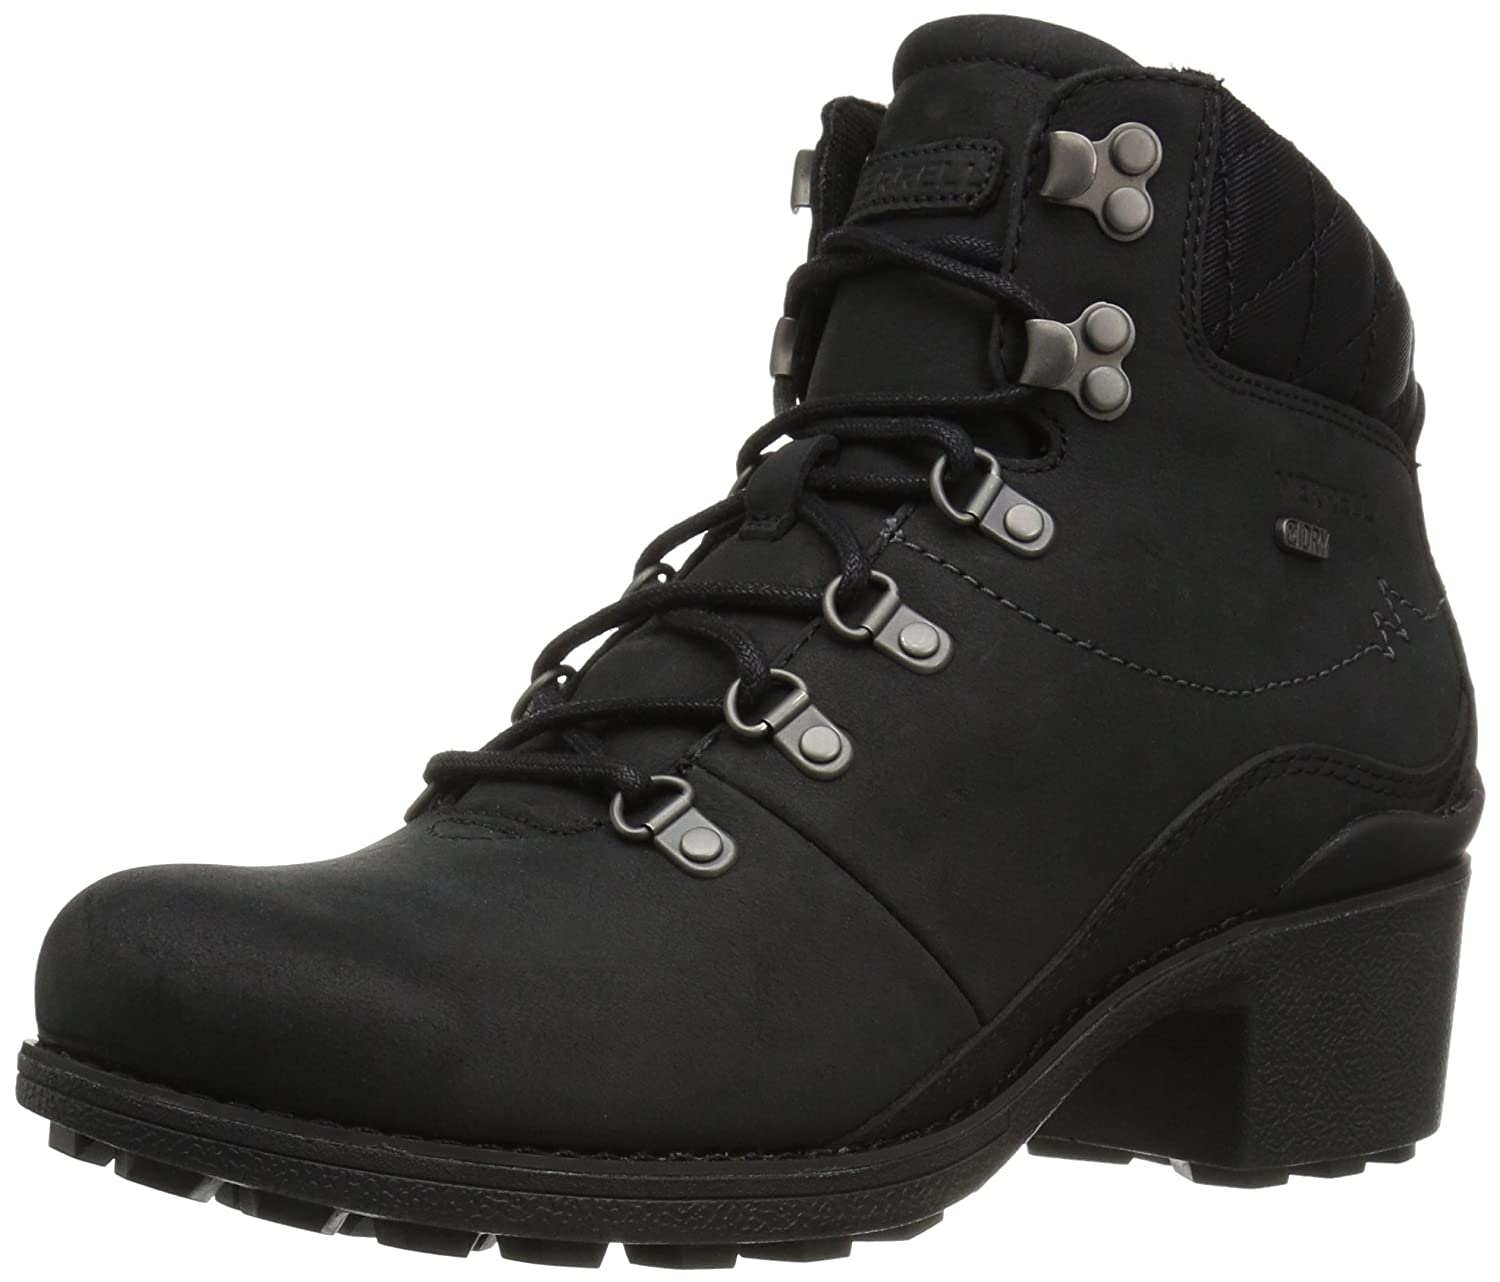 Merrell Women's Chateau Mid Lace Waterproof Snow Boot B01N0RC0KE 8 B(M) US|Black